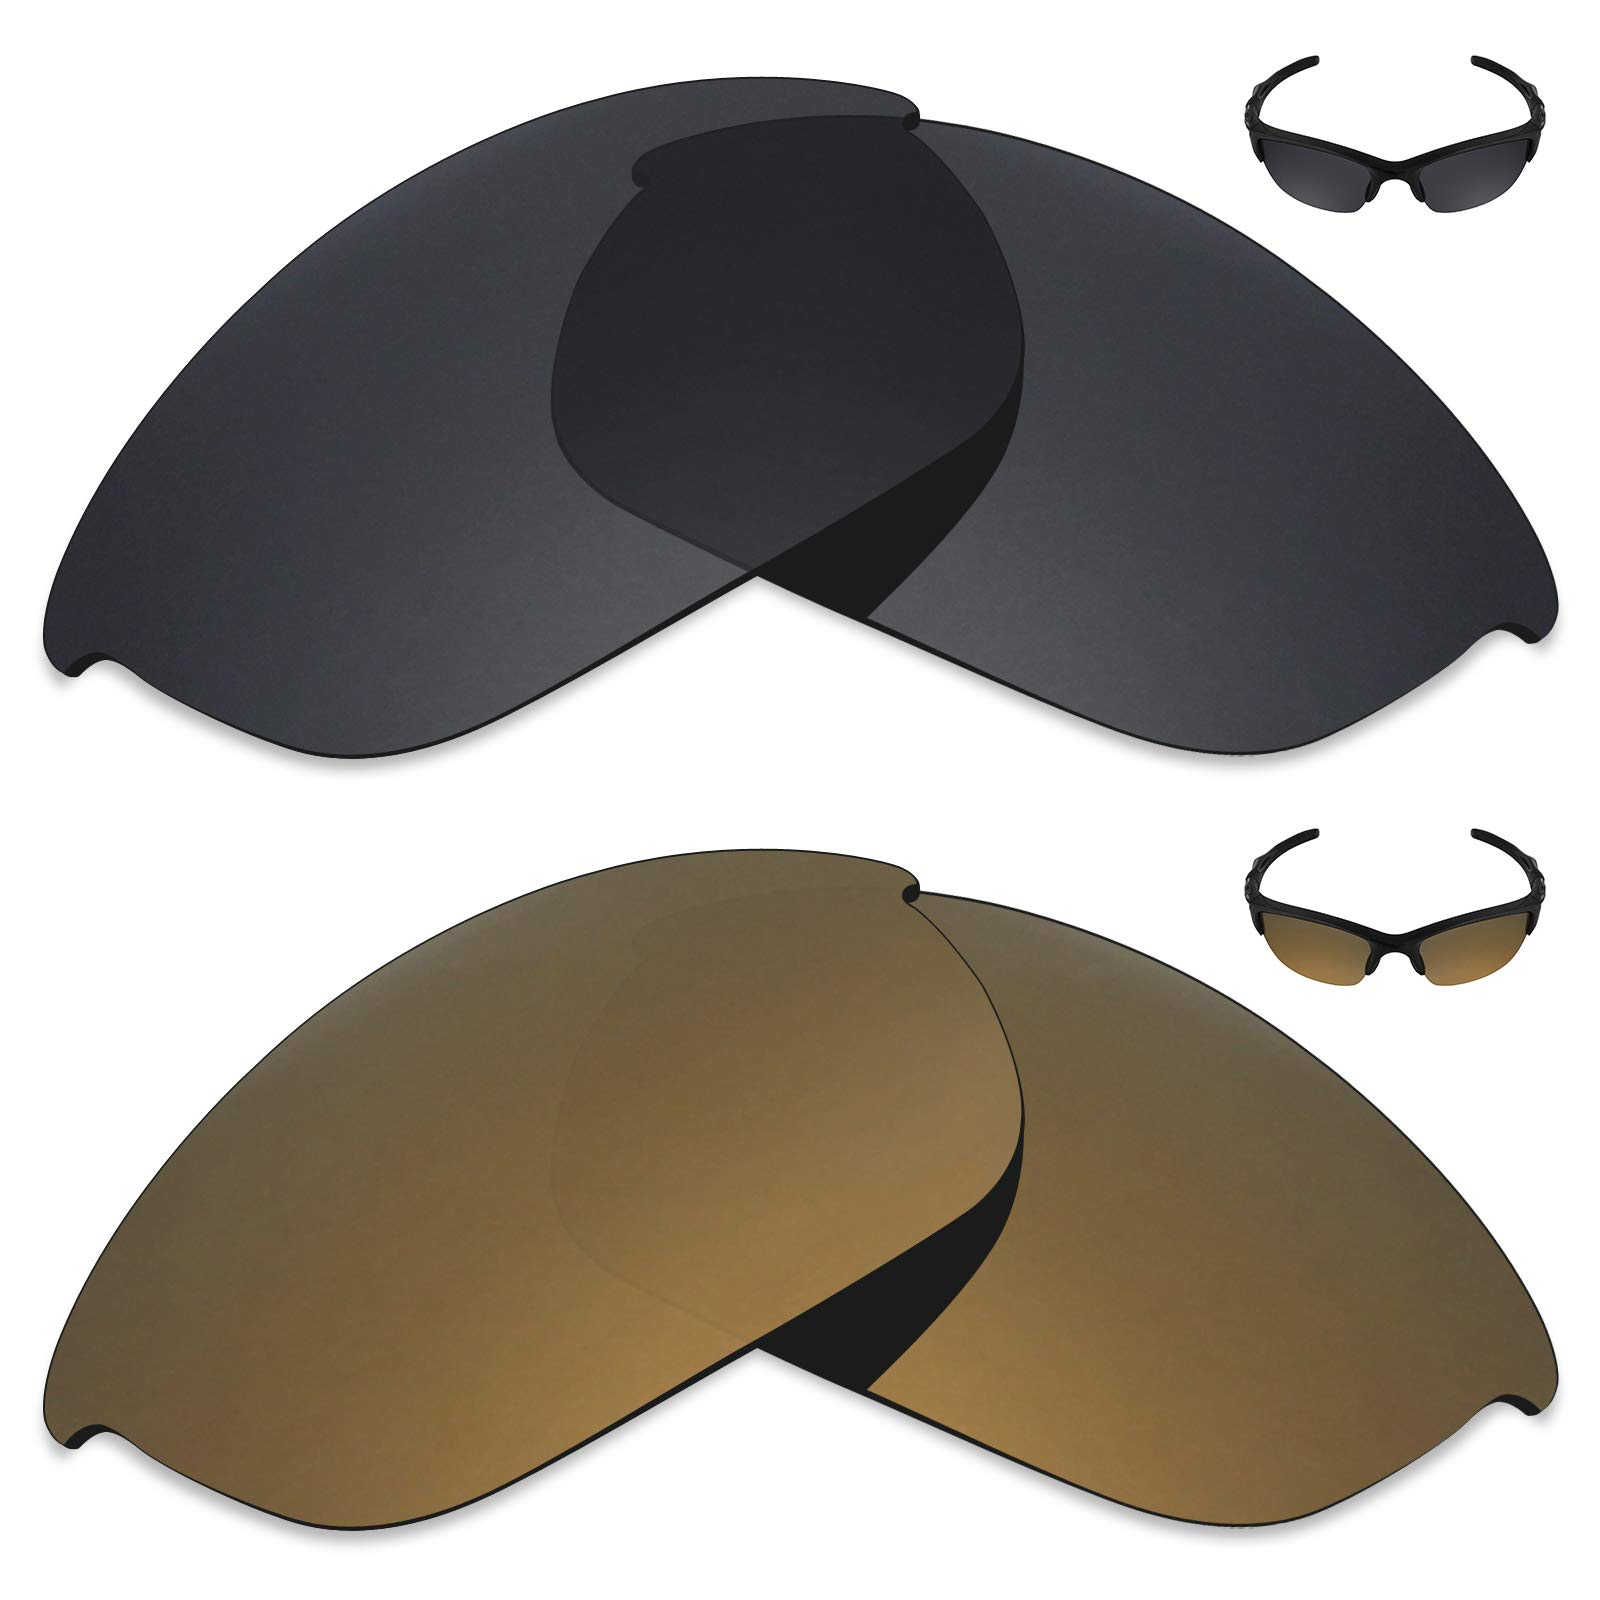 Mryok 2 Pair Polarized Replacement Lenses for Oakley Half Jacket 2.0 Sunglass - Options by Mryok